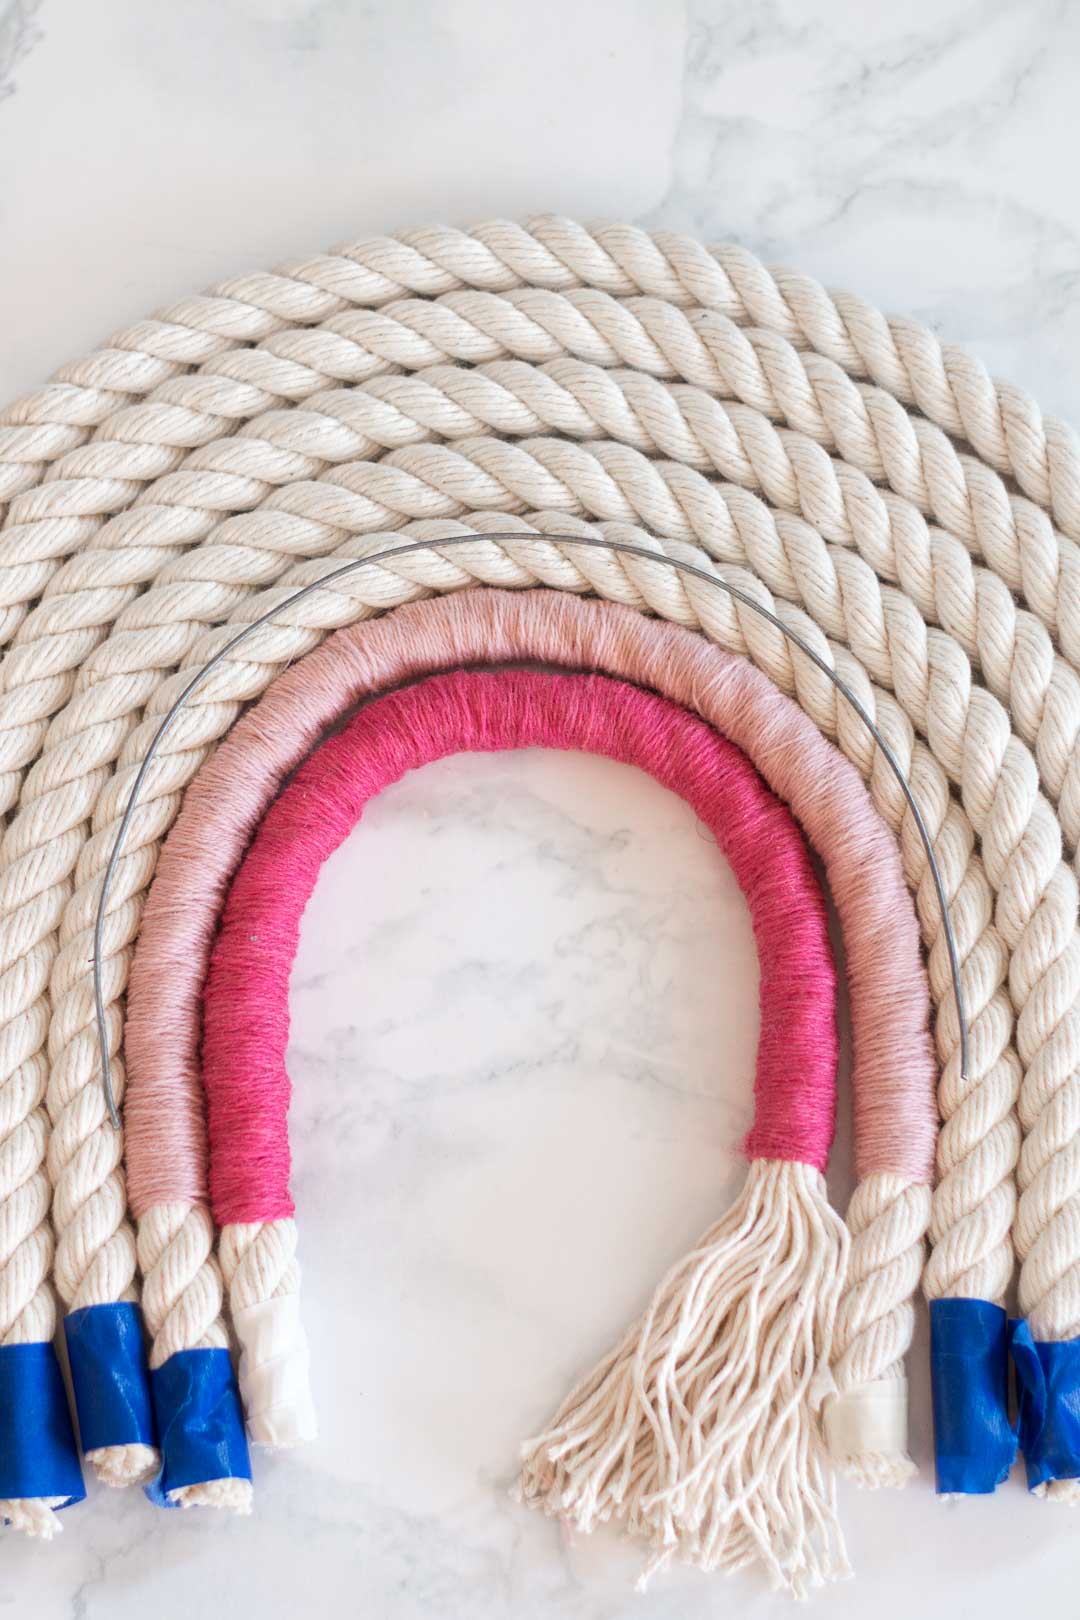 Rope Rainbow Wall Hanging DIY - Make any size rainbow that you'd like